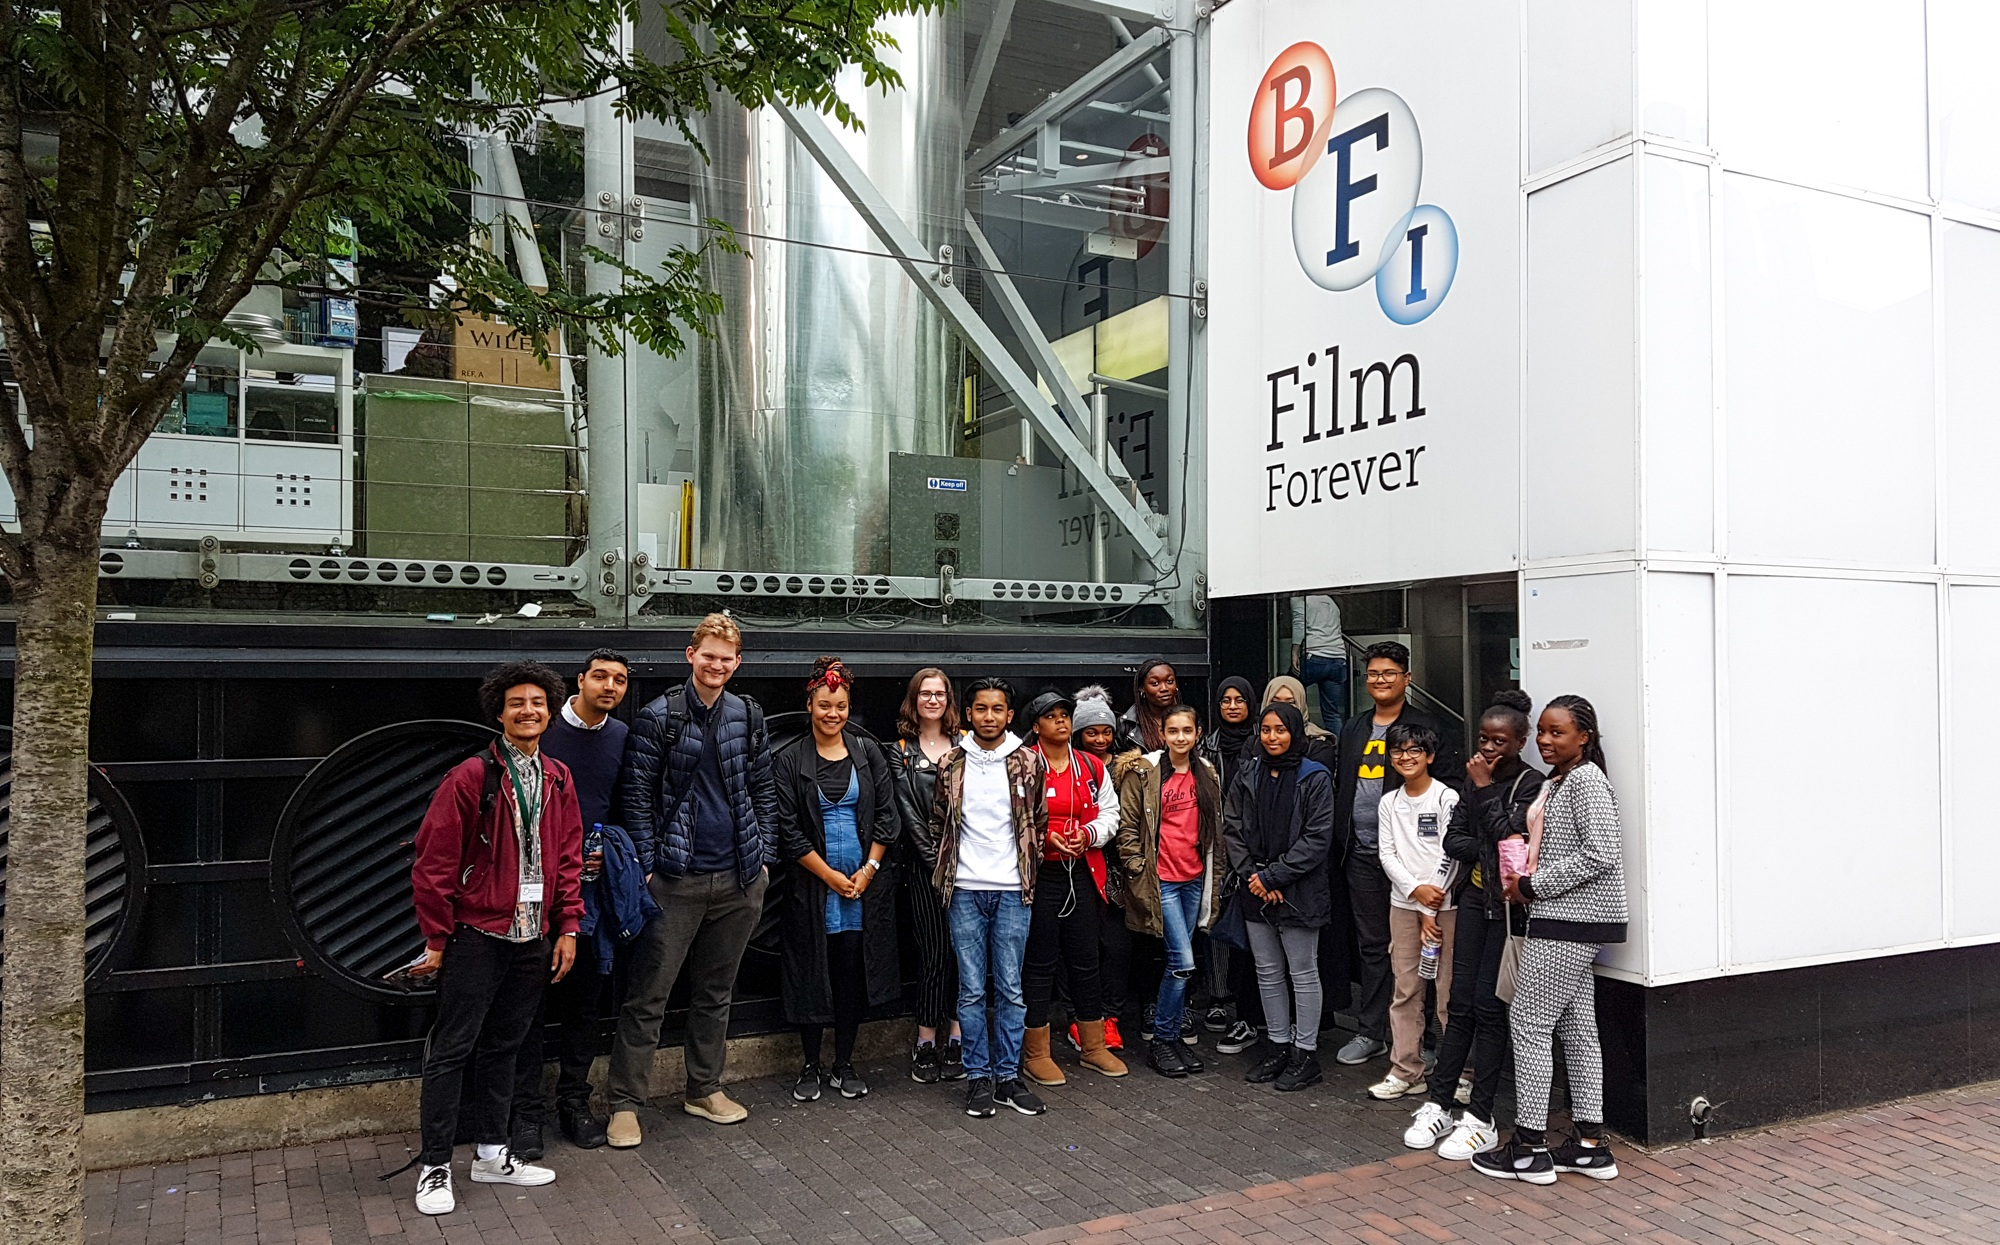 Our Young Leaders attending a workshop on Silent Filmmaking at the BFI in 2018.